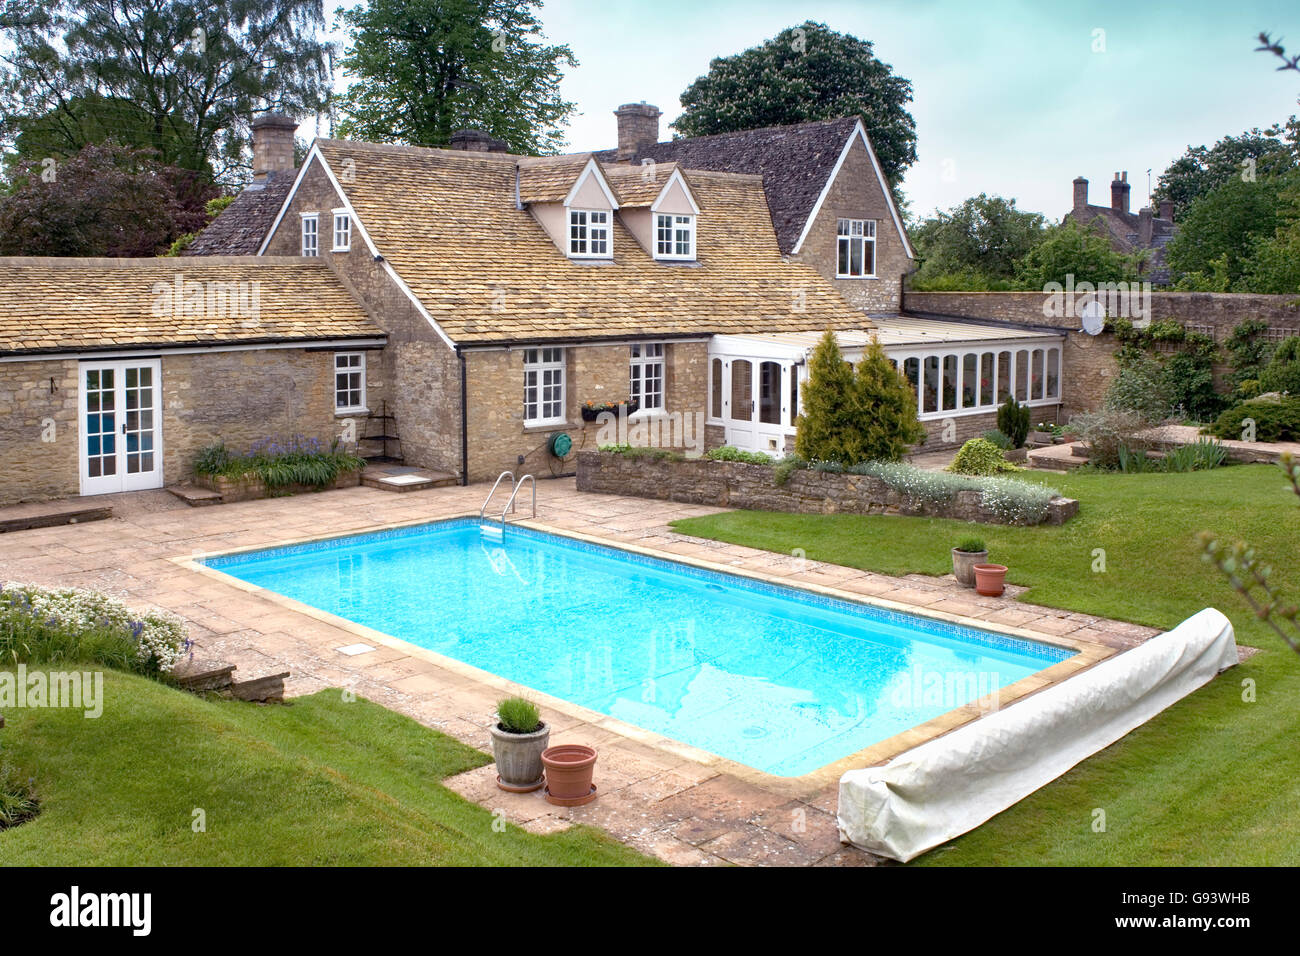 Uk An Outdoor Swimming Pool In The Garden Of A Large House For Stock Photo Alamy